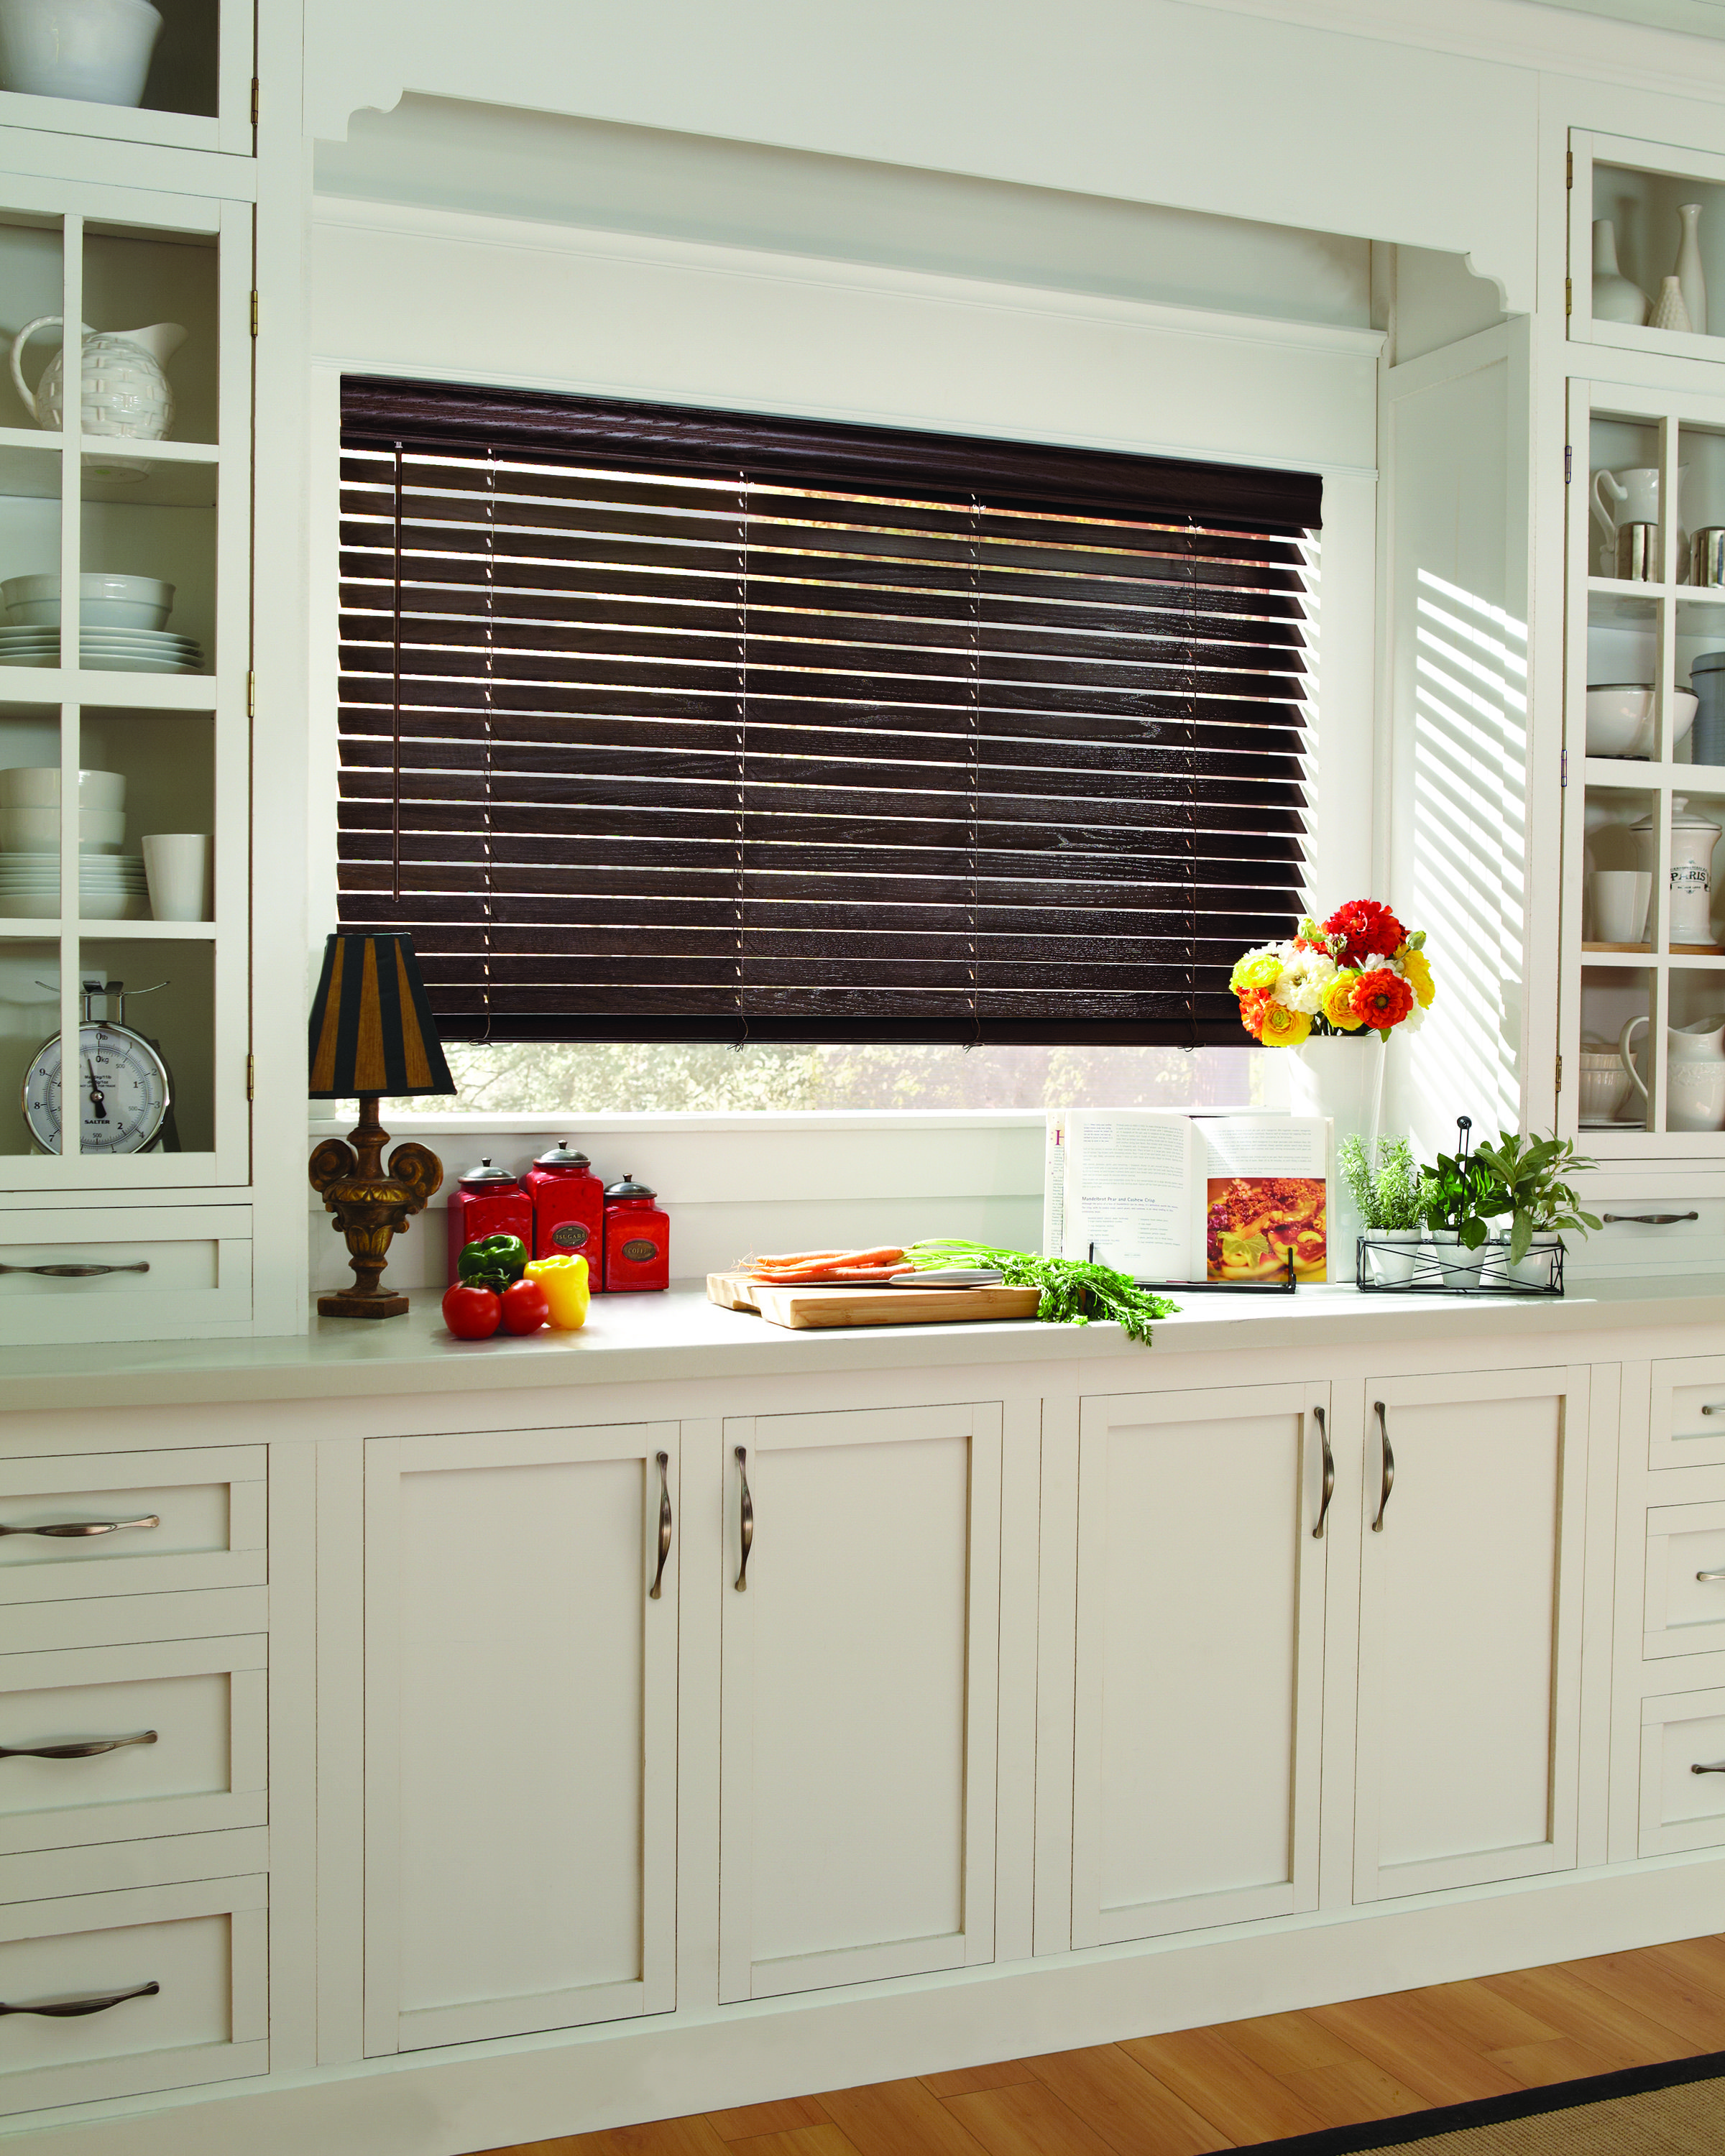 White Kitchen Blinds: Love The Contrast Of Dark Stained Wood Blinds Against The